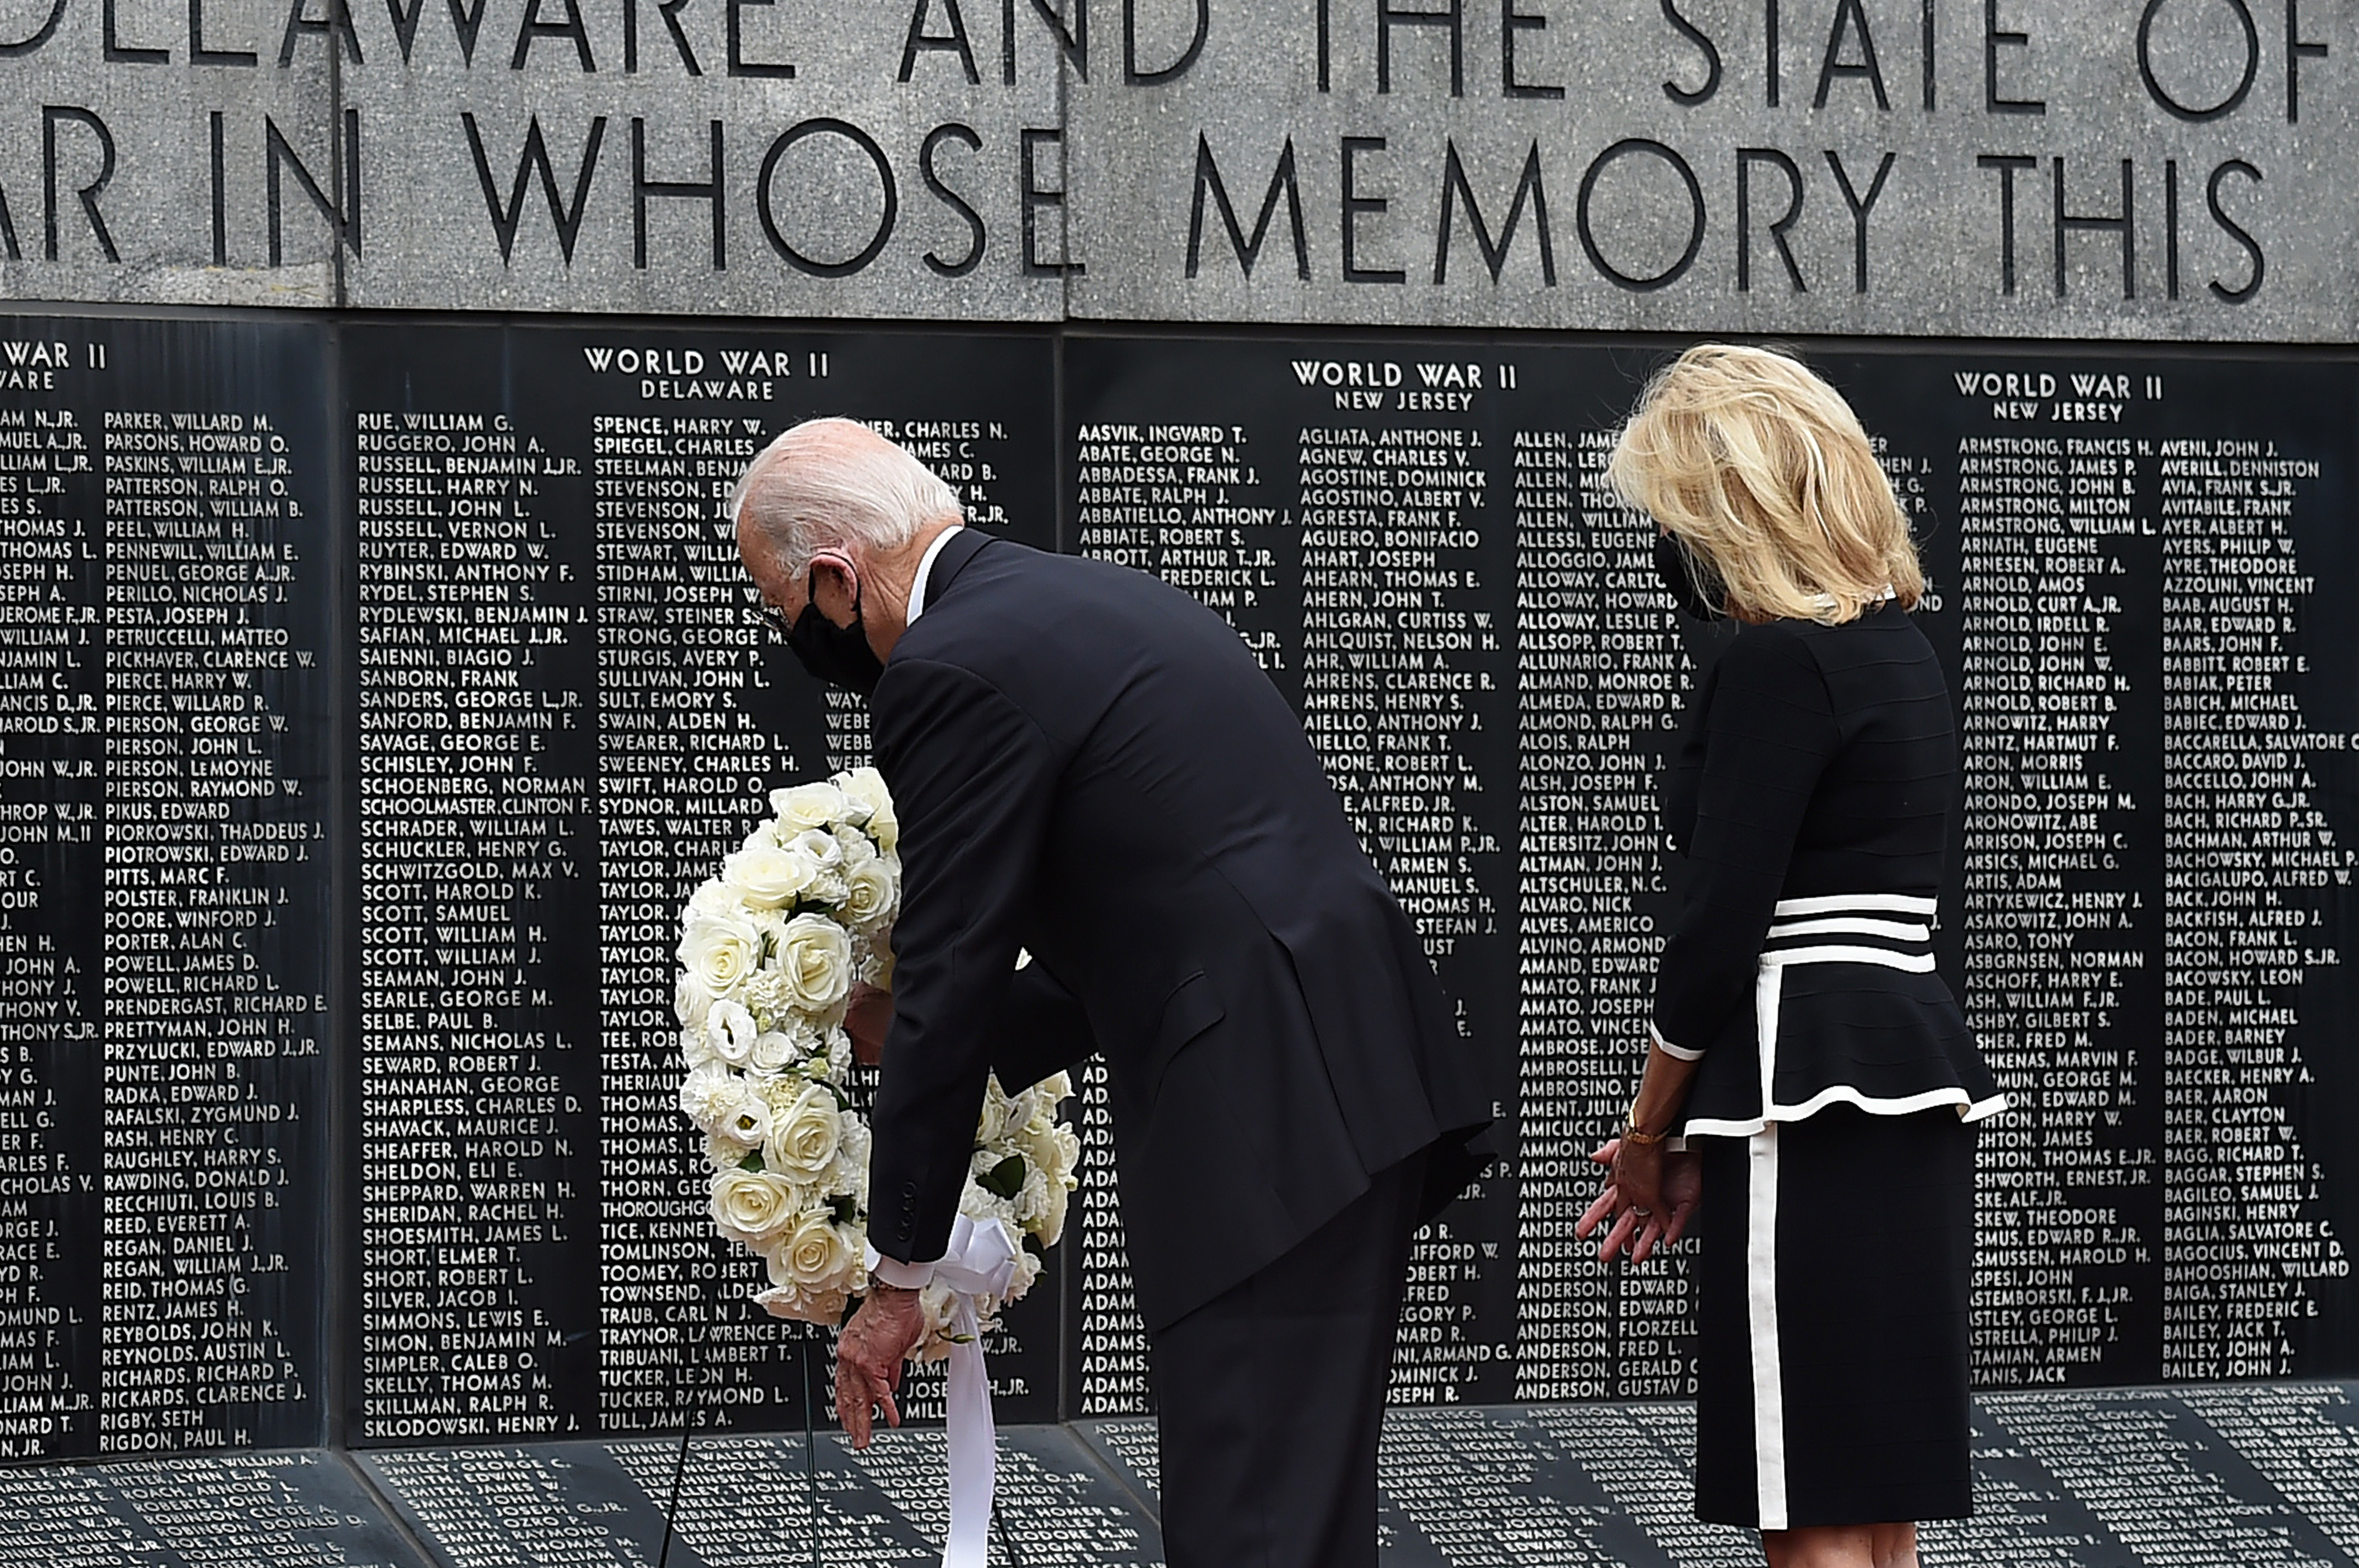 Democratic presidential candidate and former US Vice President Joe Biden with his wife Jill Biden, pay their respects to fallen service members on Memorial Day at Delaware Memorial Bridge Veteran's Memorial Park in Newcastle, Delaware, May 25, 2020. (Photo by Olivier DOULIERY / AFP) (Photo by OLIVIER DOULIERY/AFP via Getty Images)